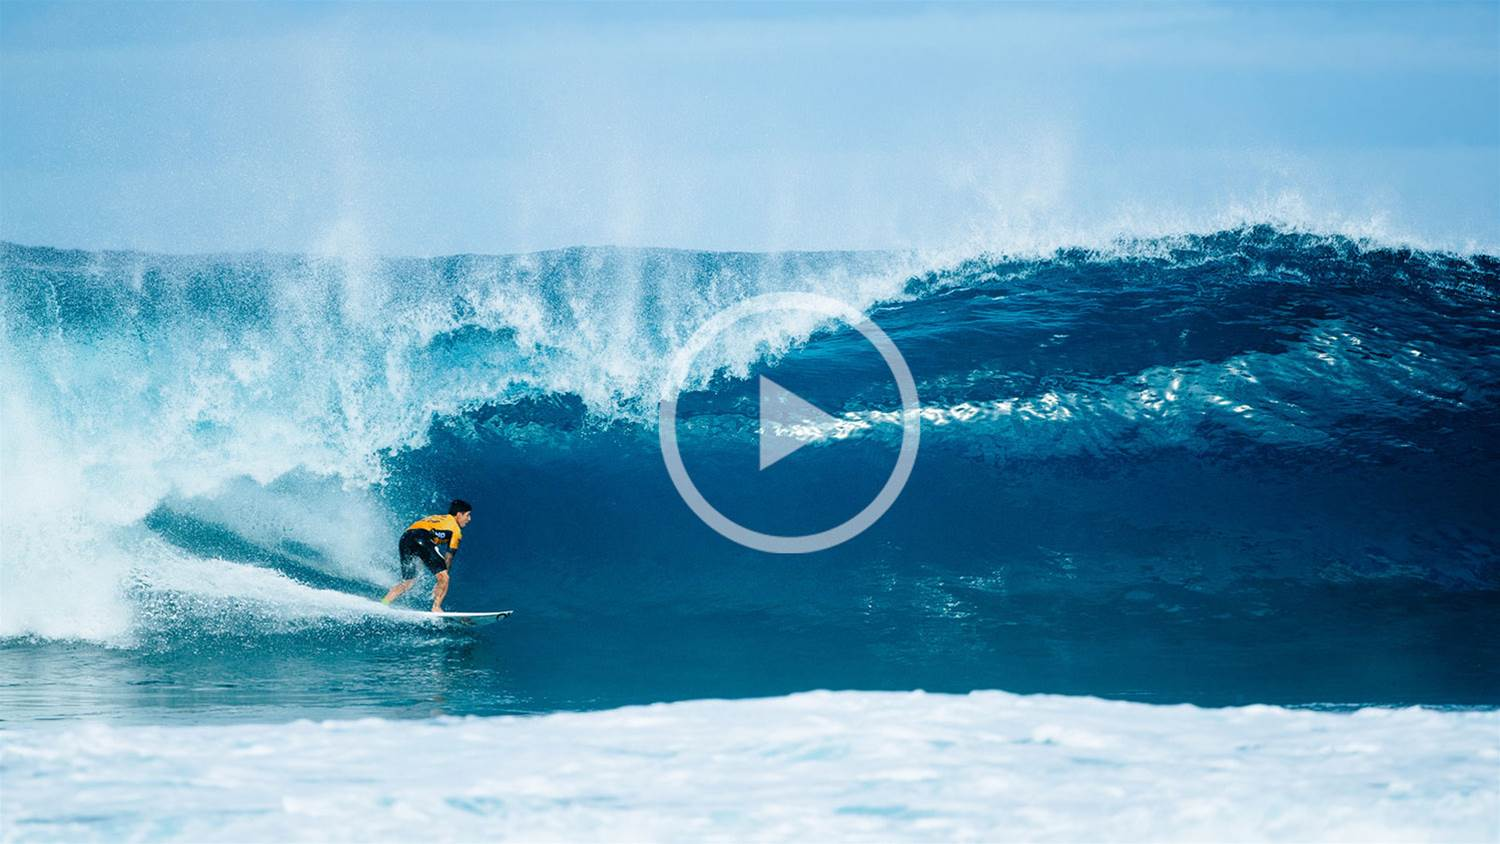 Behind The Scenes On Finals Day With Gabriel Medina